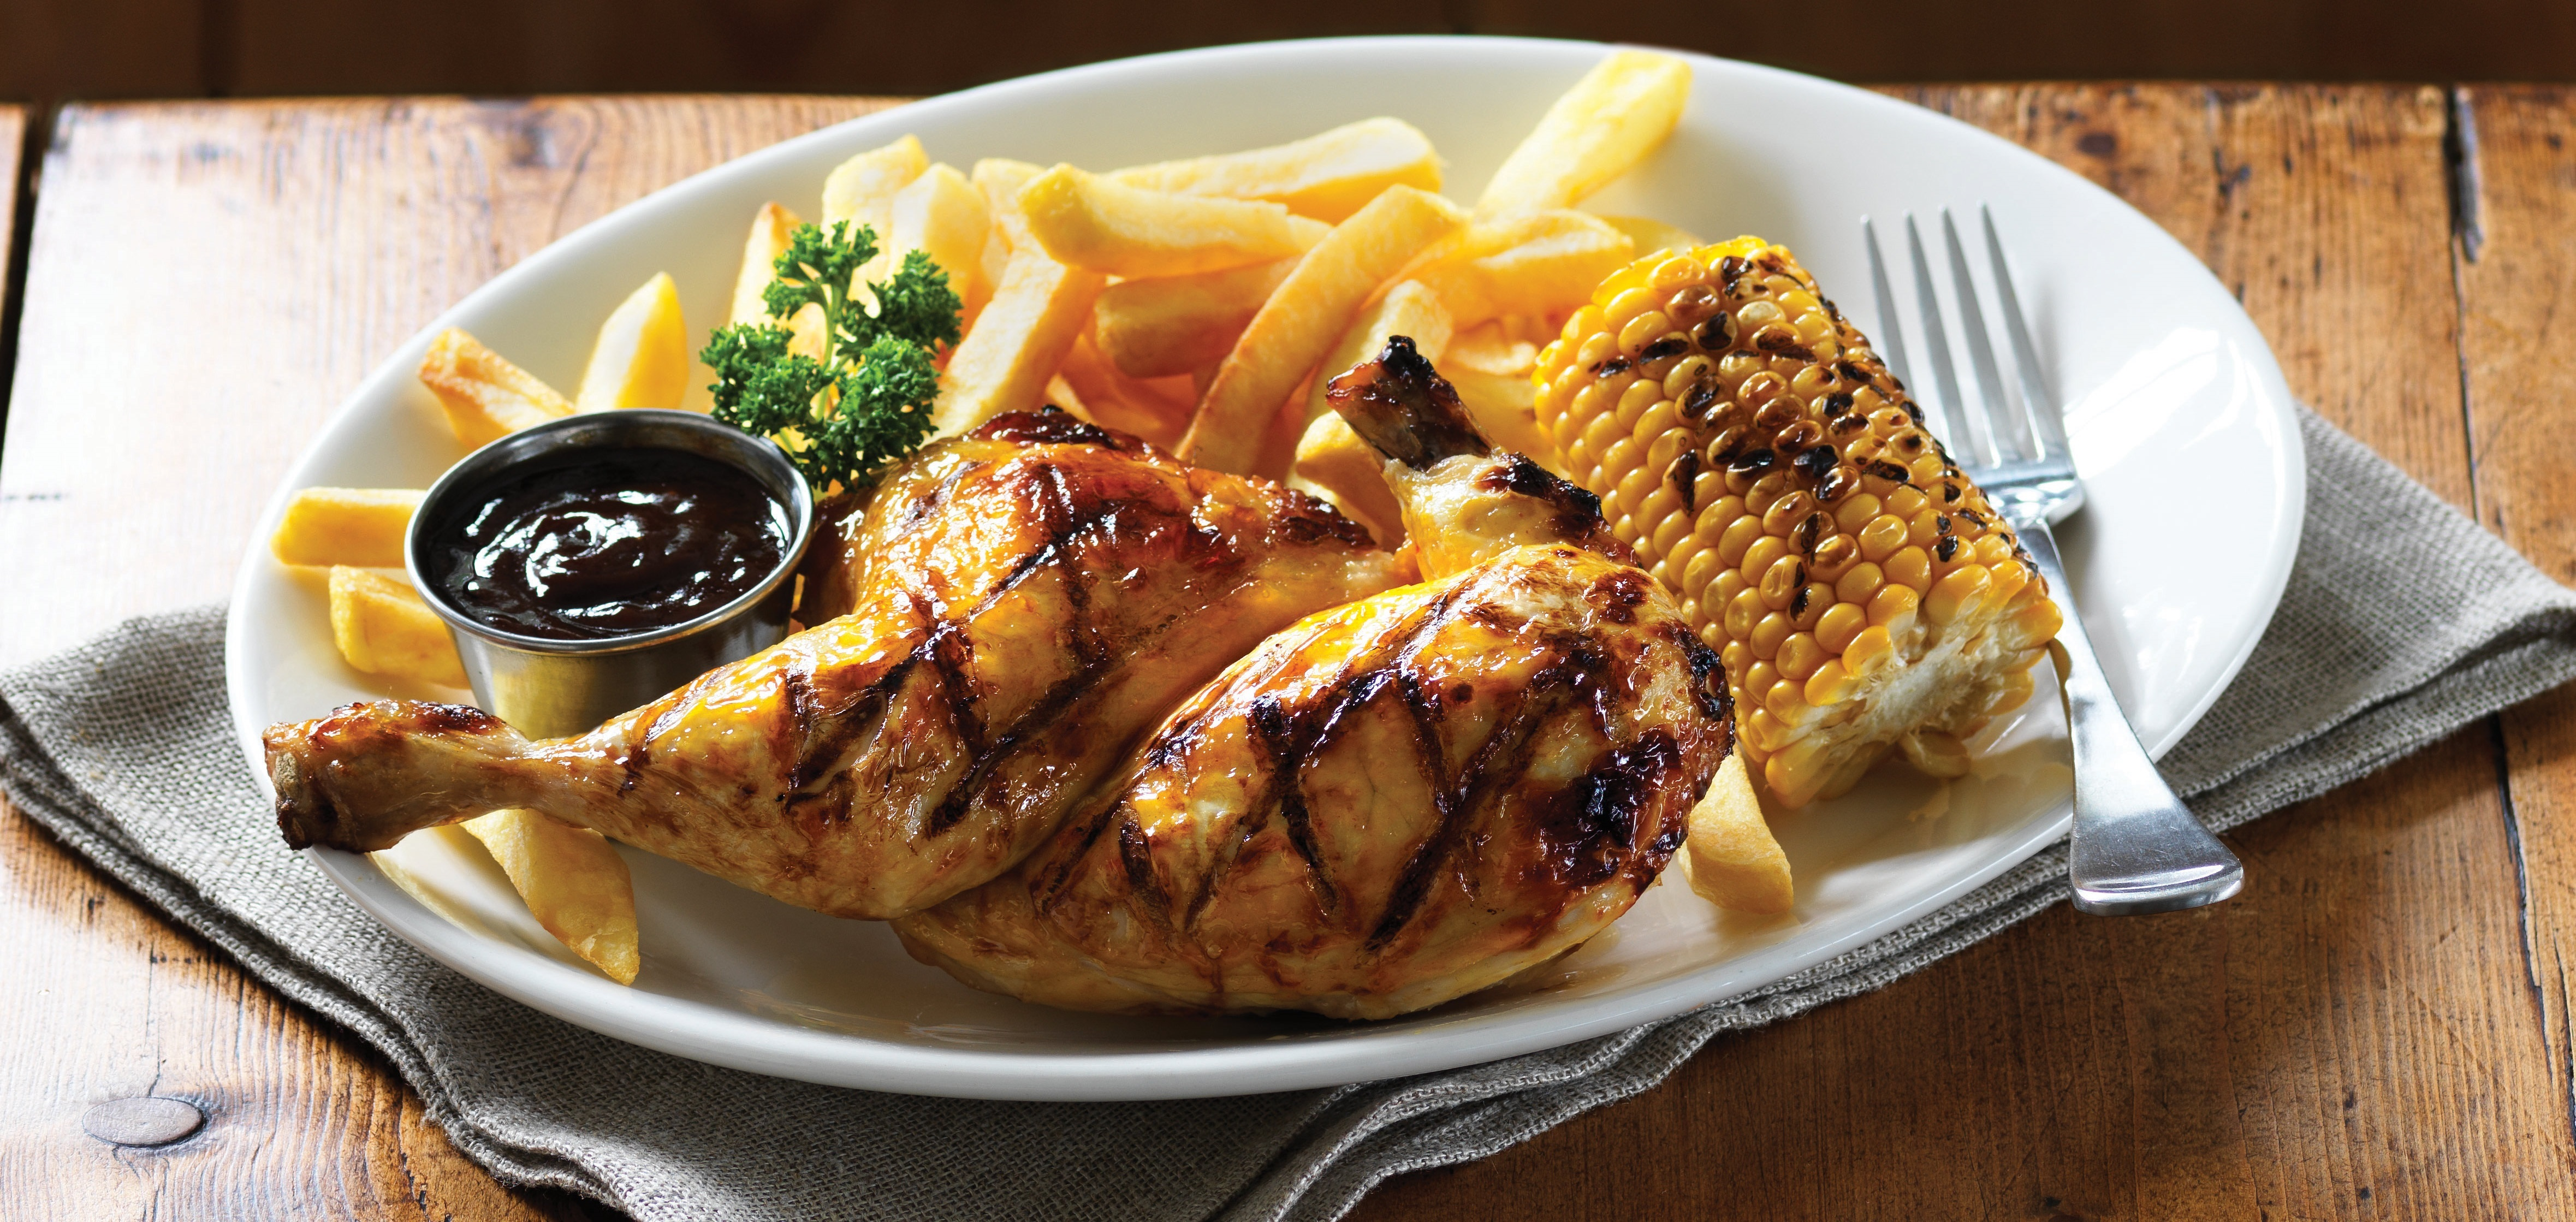 Harvester - Broad Street Plaza - West Yorkshire